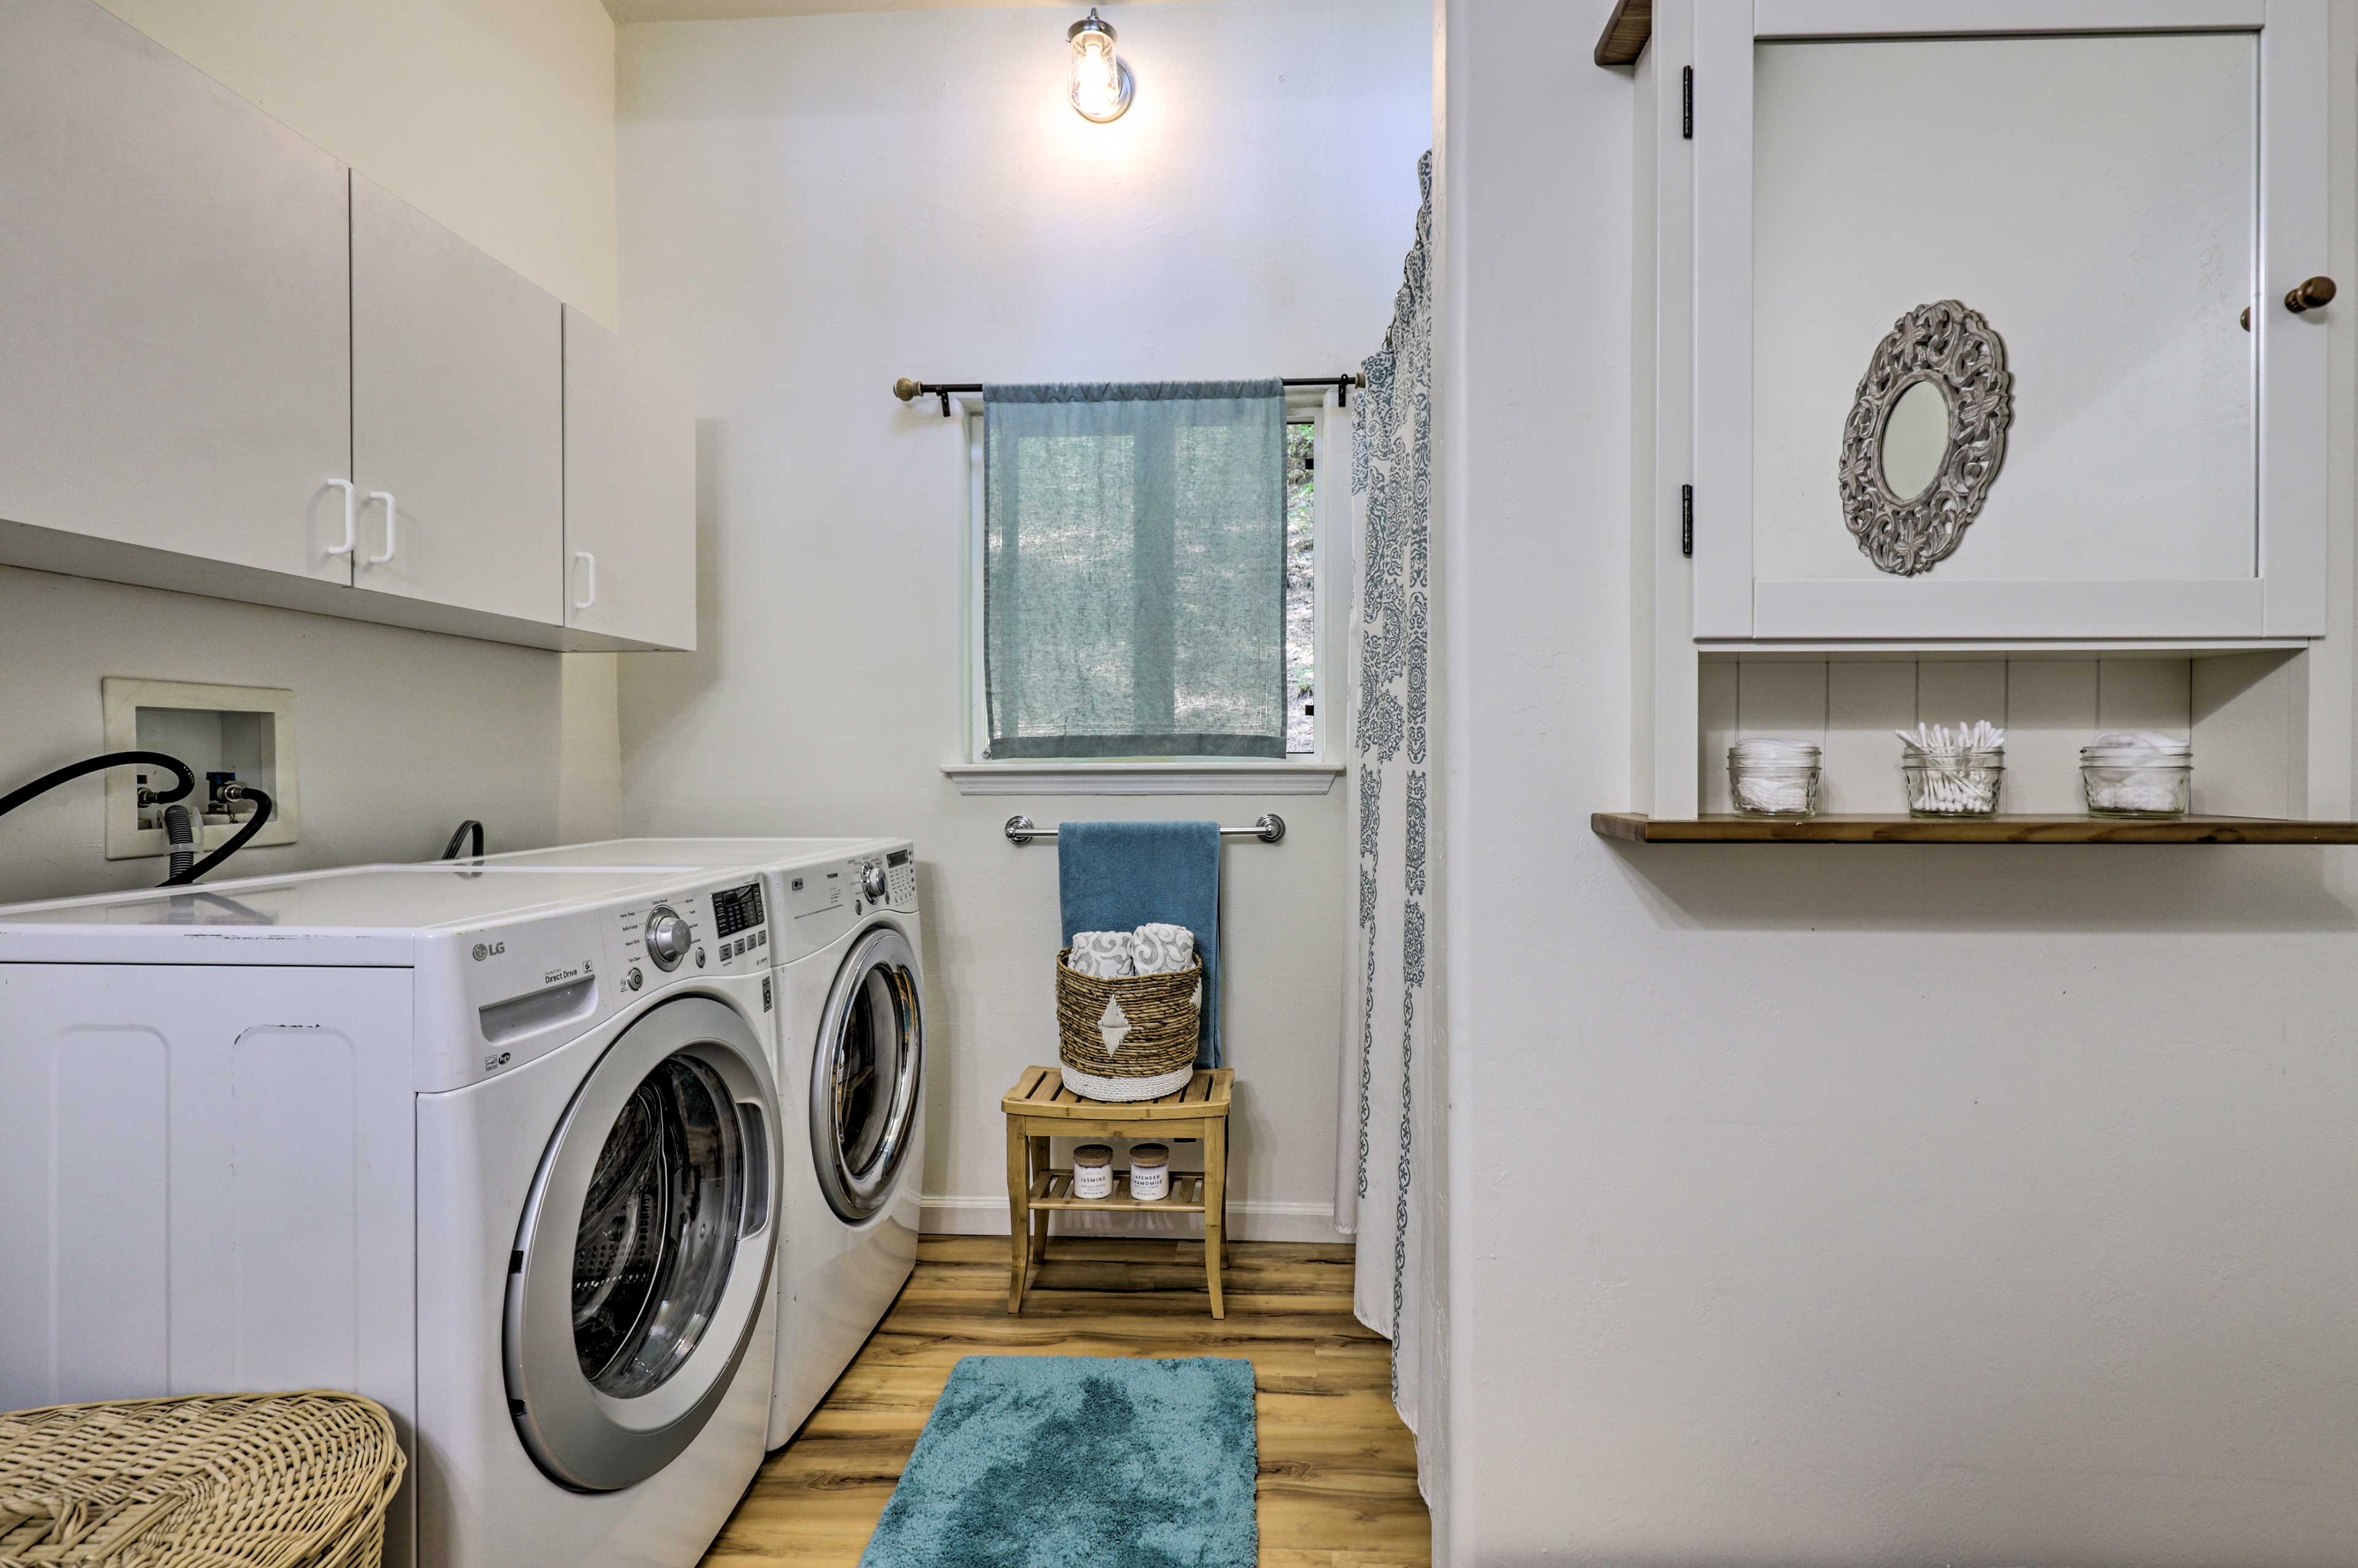 Keep your wardrobe fresh with the cabin's washer and dryer.